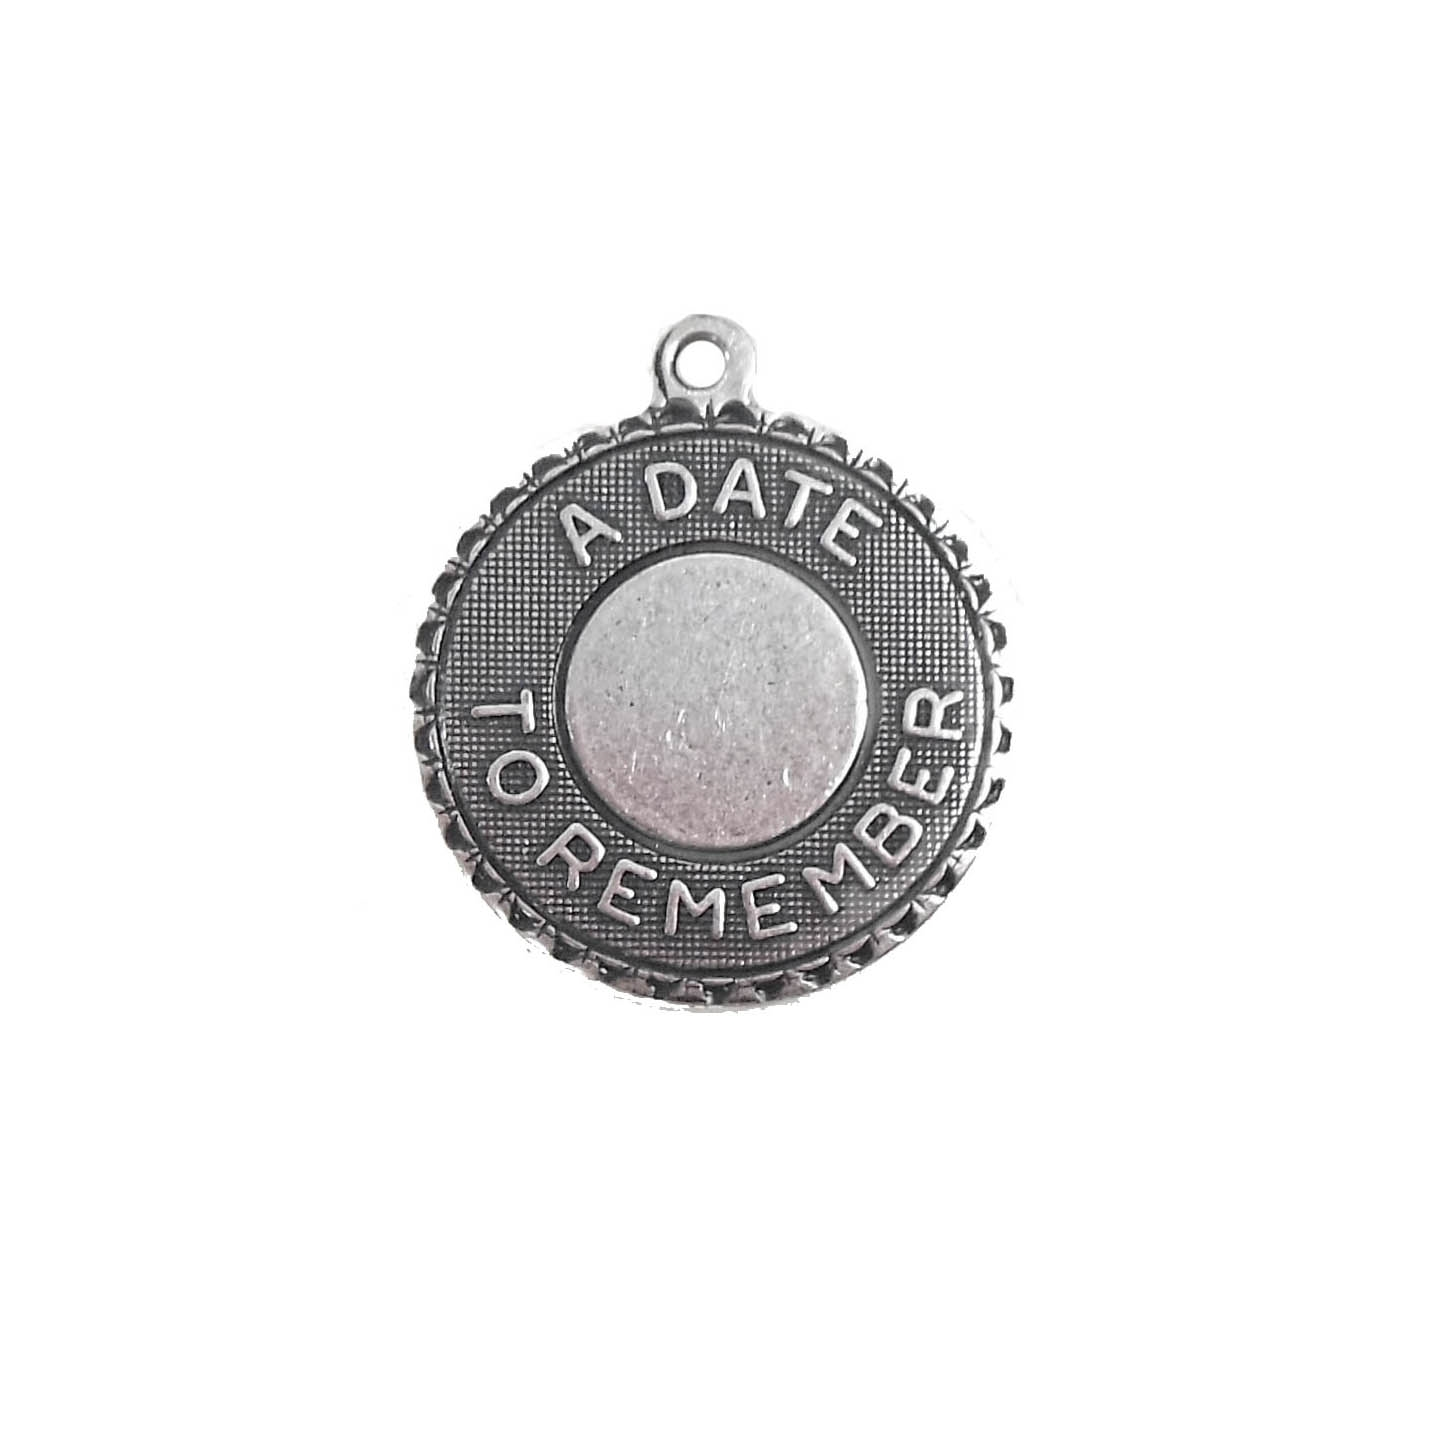 date charms, jewelry making,  antique silver, 18mm